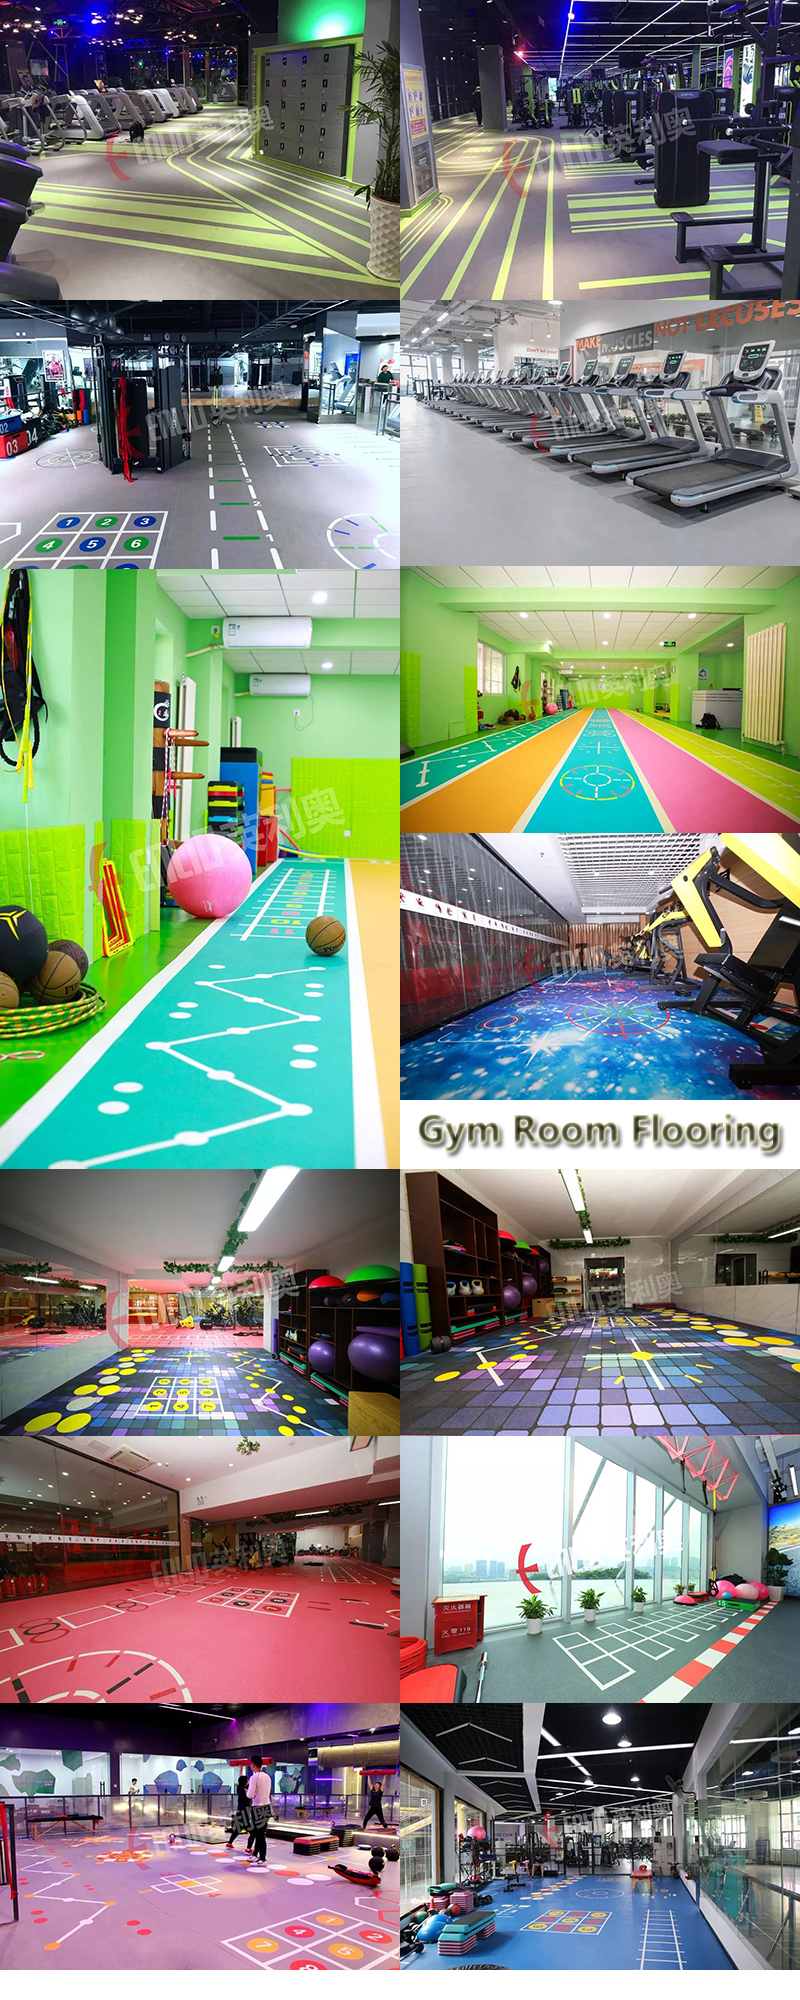 Gym room flooring